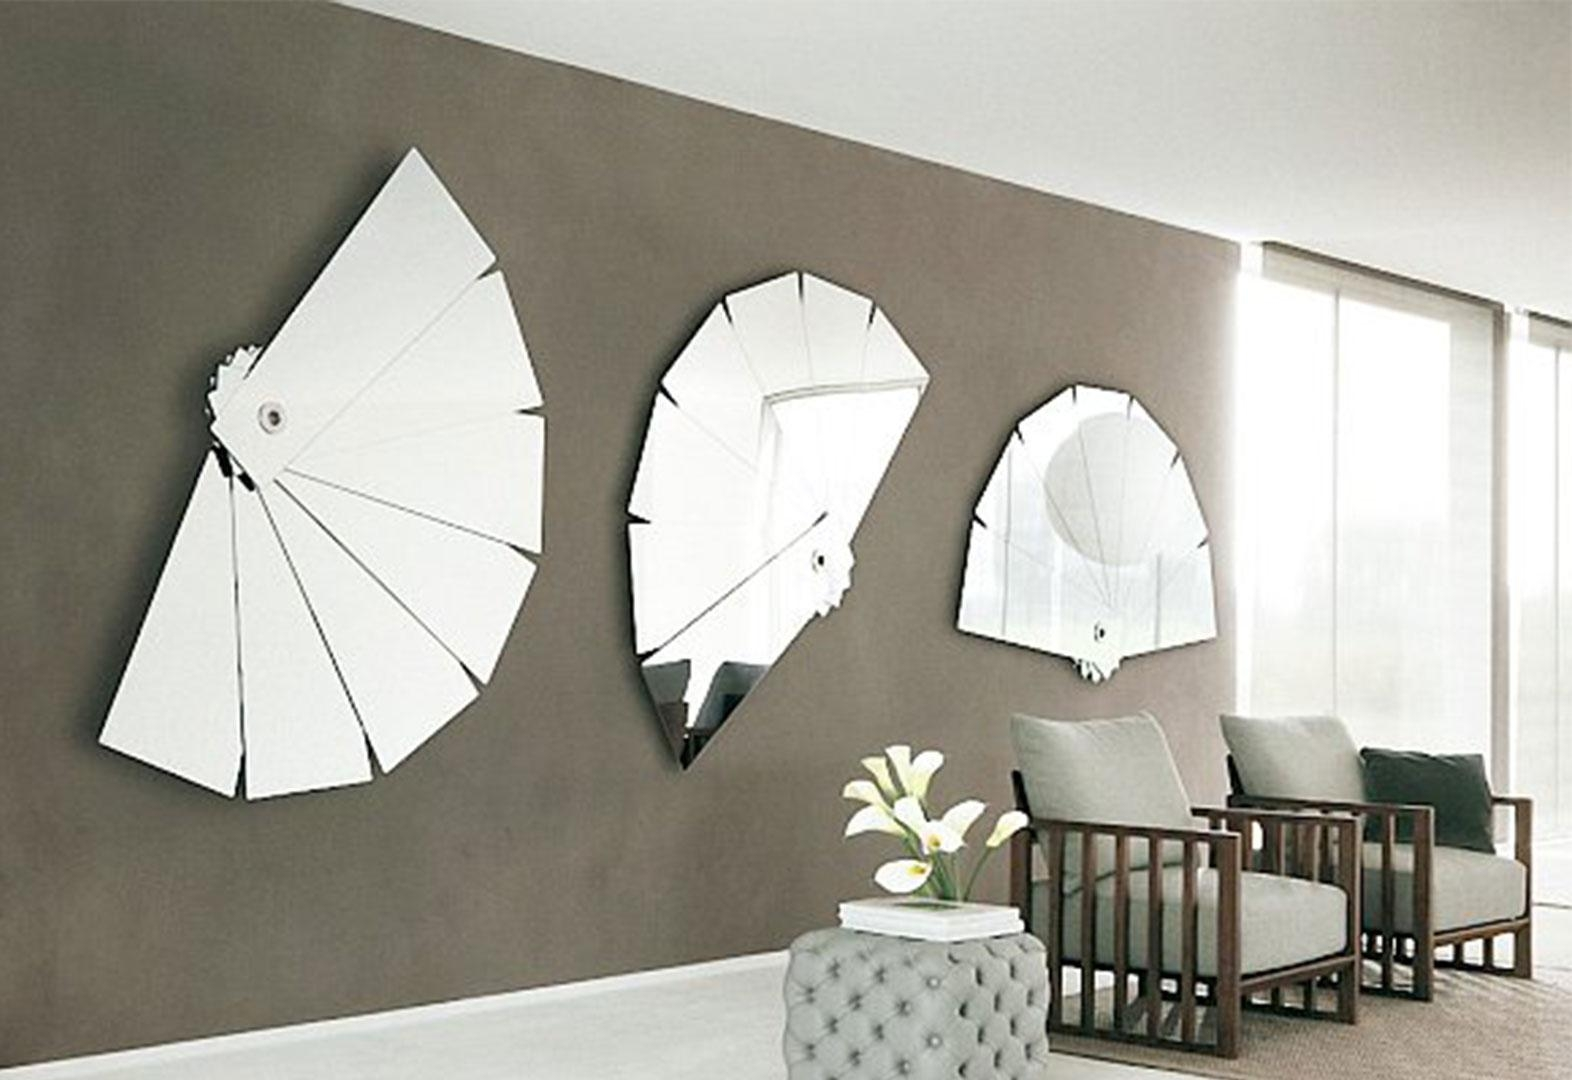 Large Modern Wall Mirrors Best Decorative Wall Mirrors Ideas Inside Modern Contemporary Wall Mirrors (Image 12 of 15)